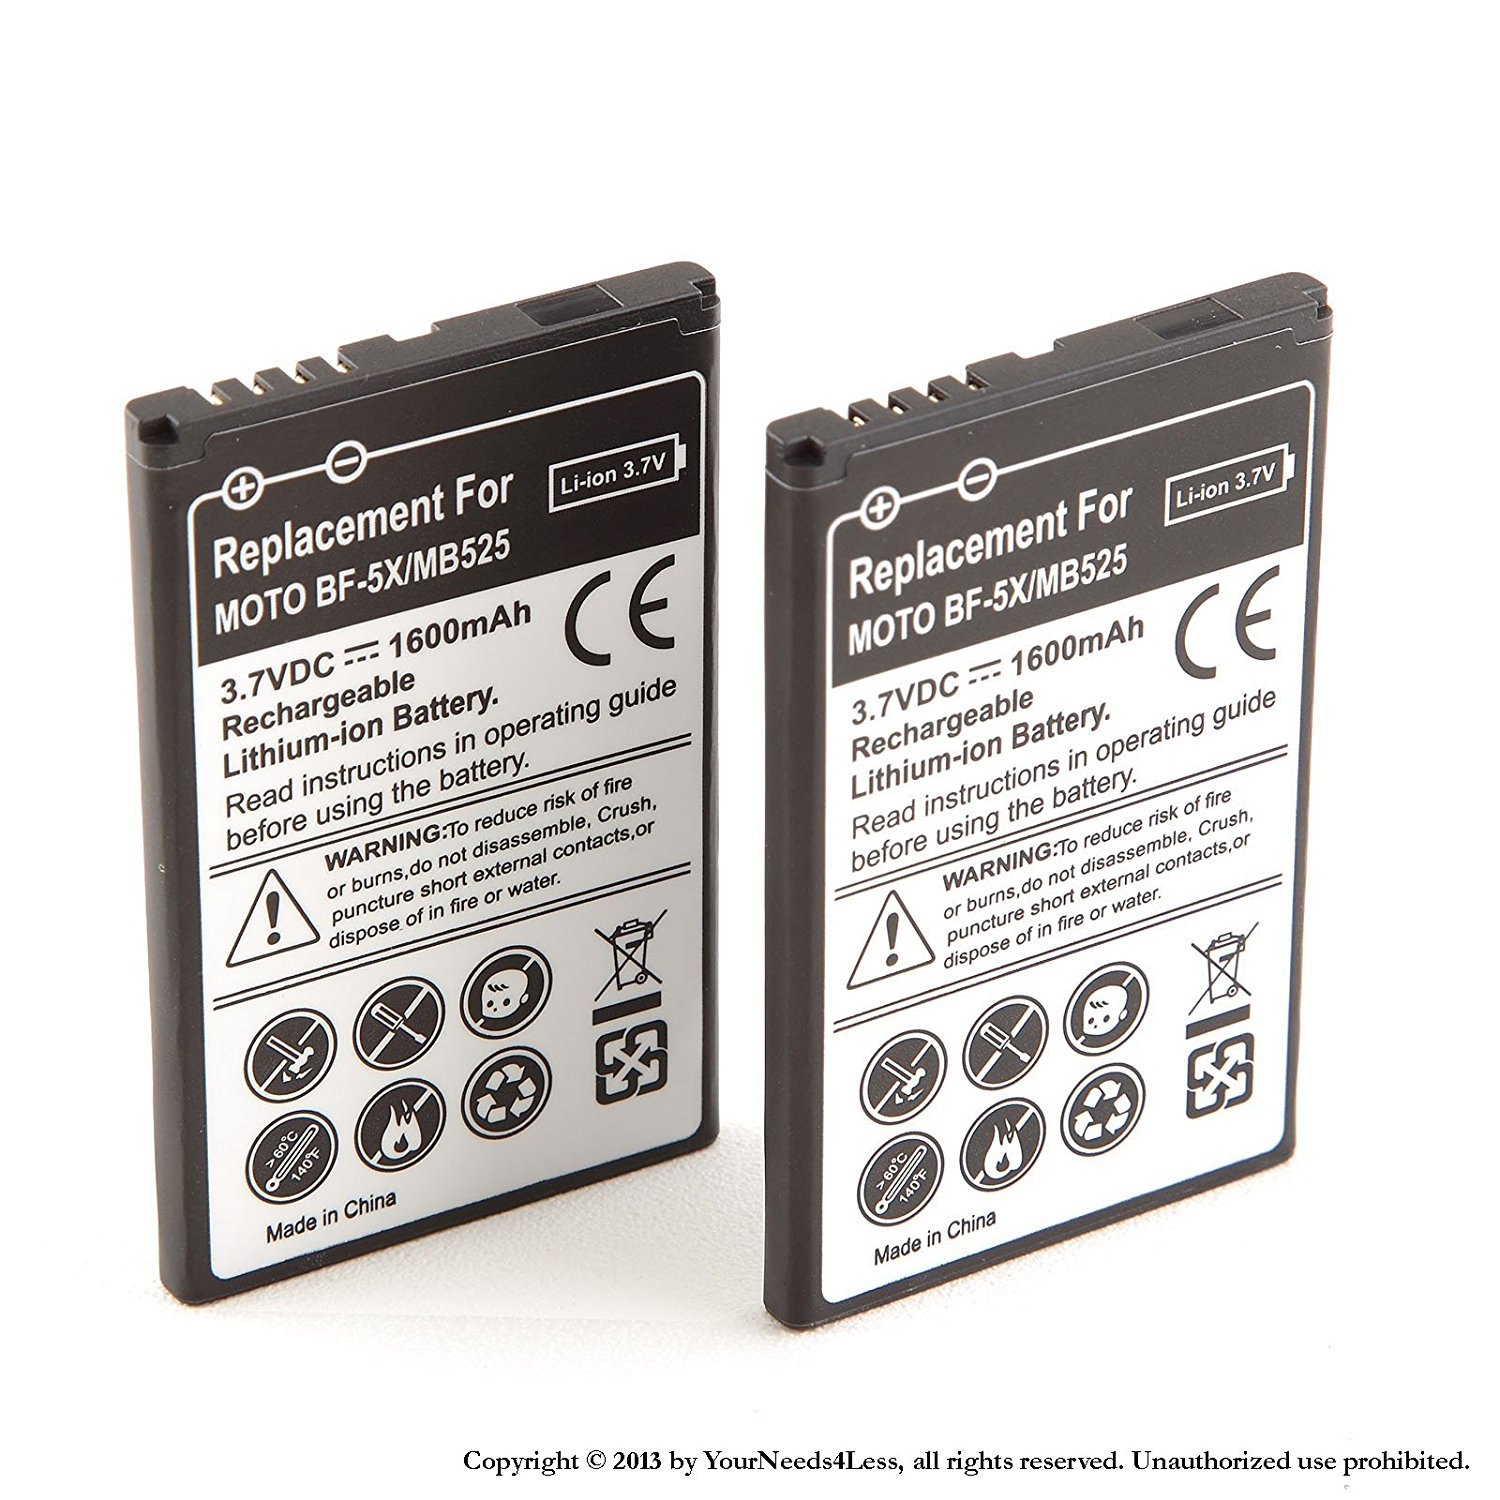 YN4L 2 X 1600mAh Replacement Batteries for Motorola Bravo MB520 ; Defy MB525